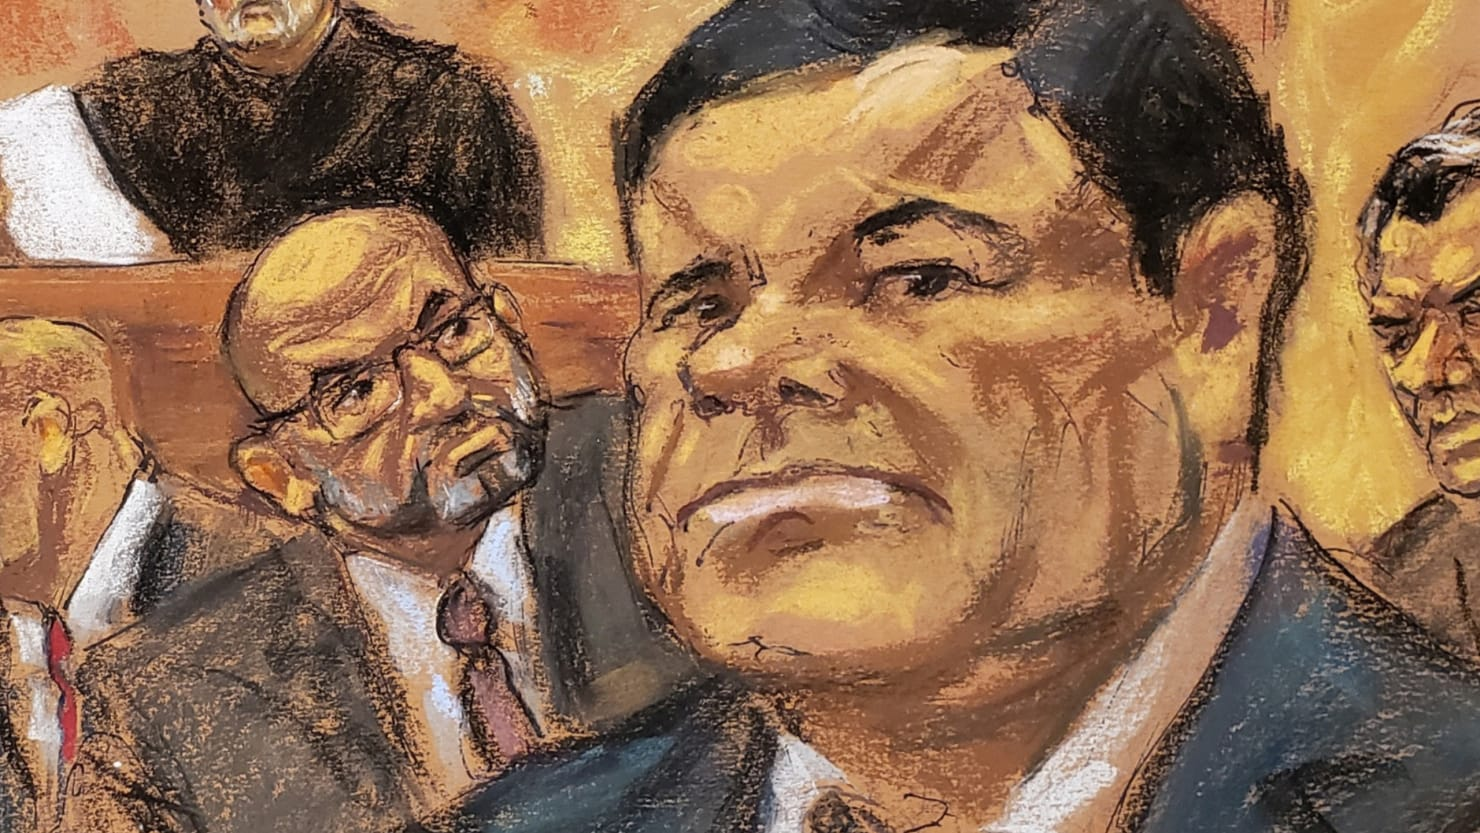 El Chapo's Lawyers Intend to Request a New Trial